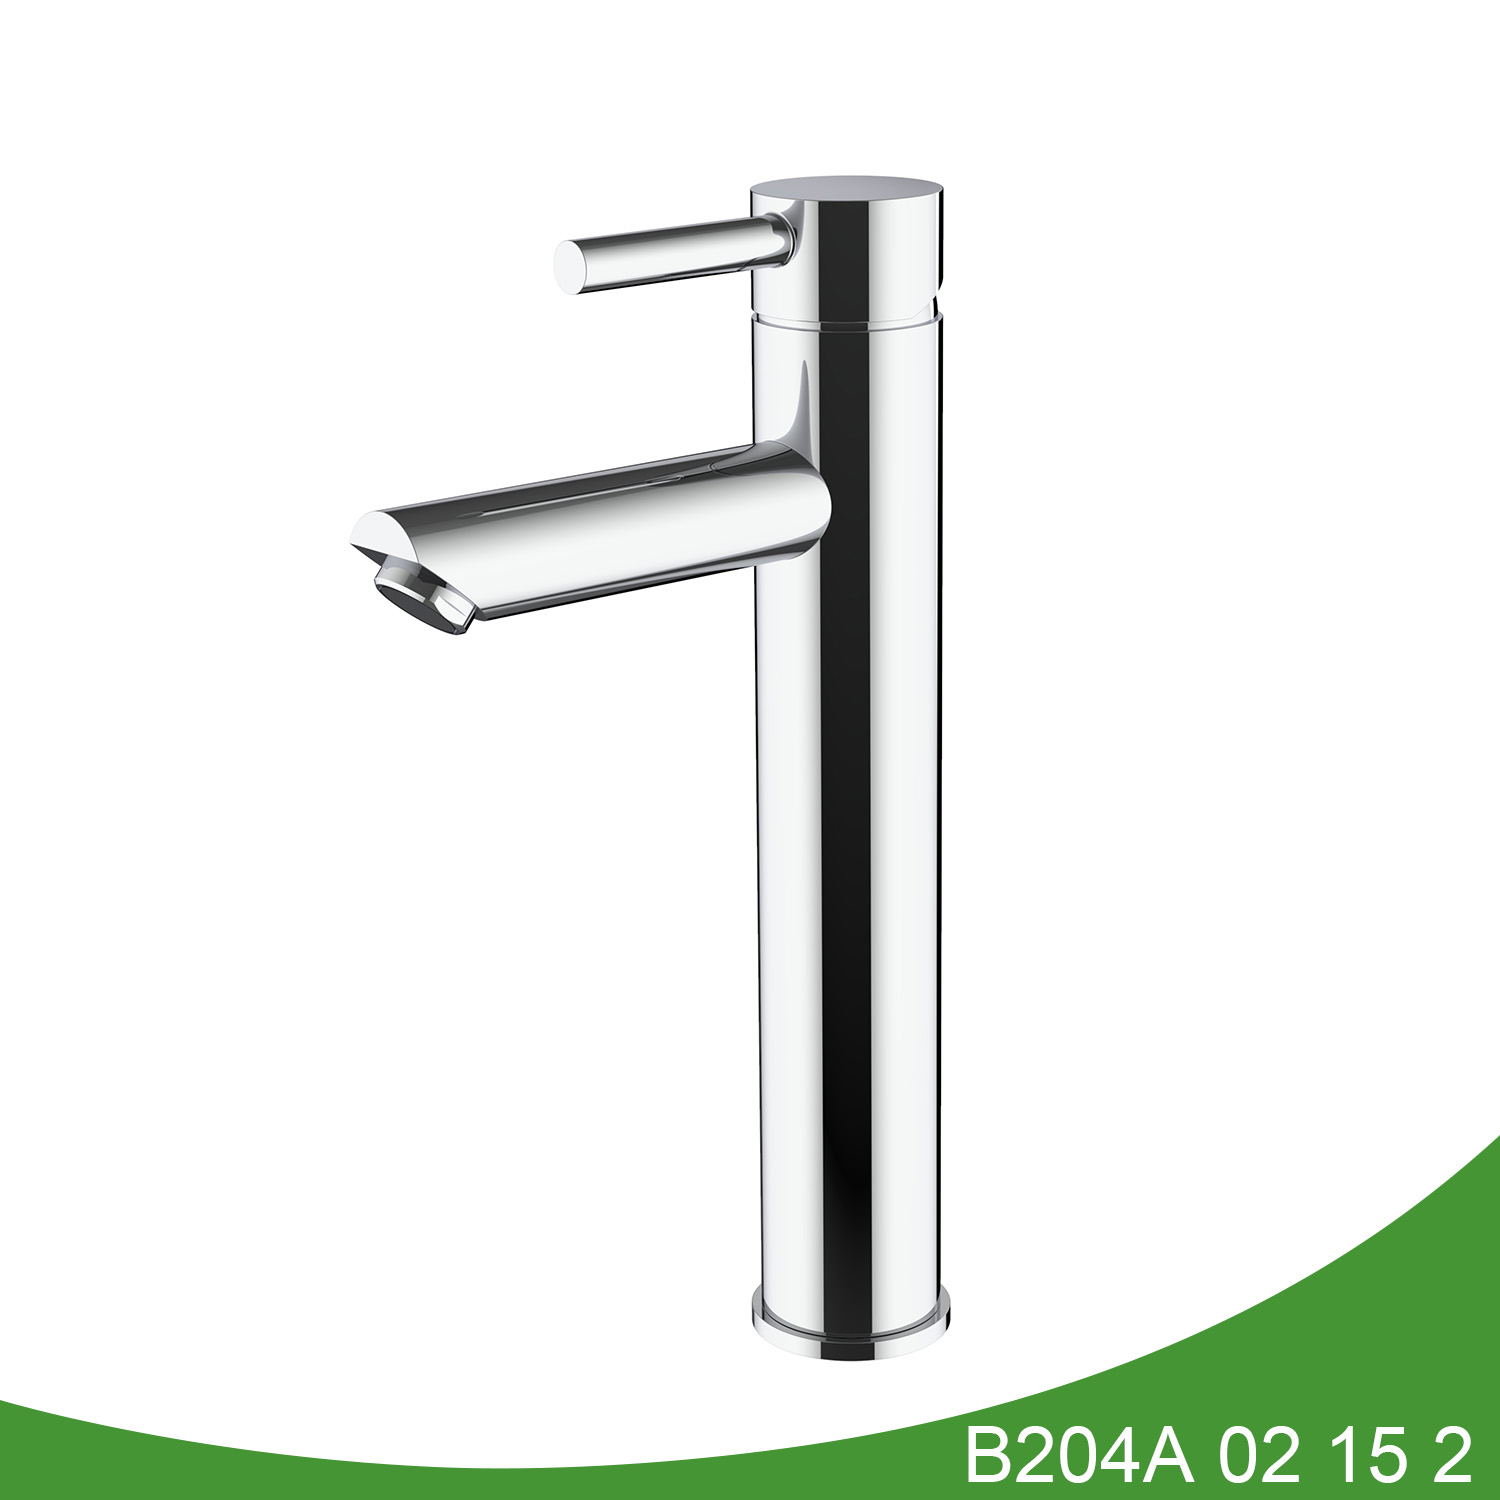 Polish stainless steel vessel tap B204A 02 15 2